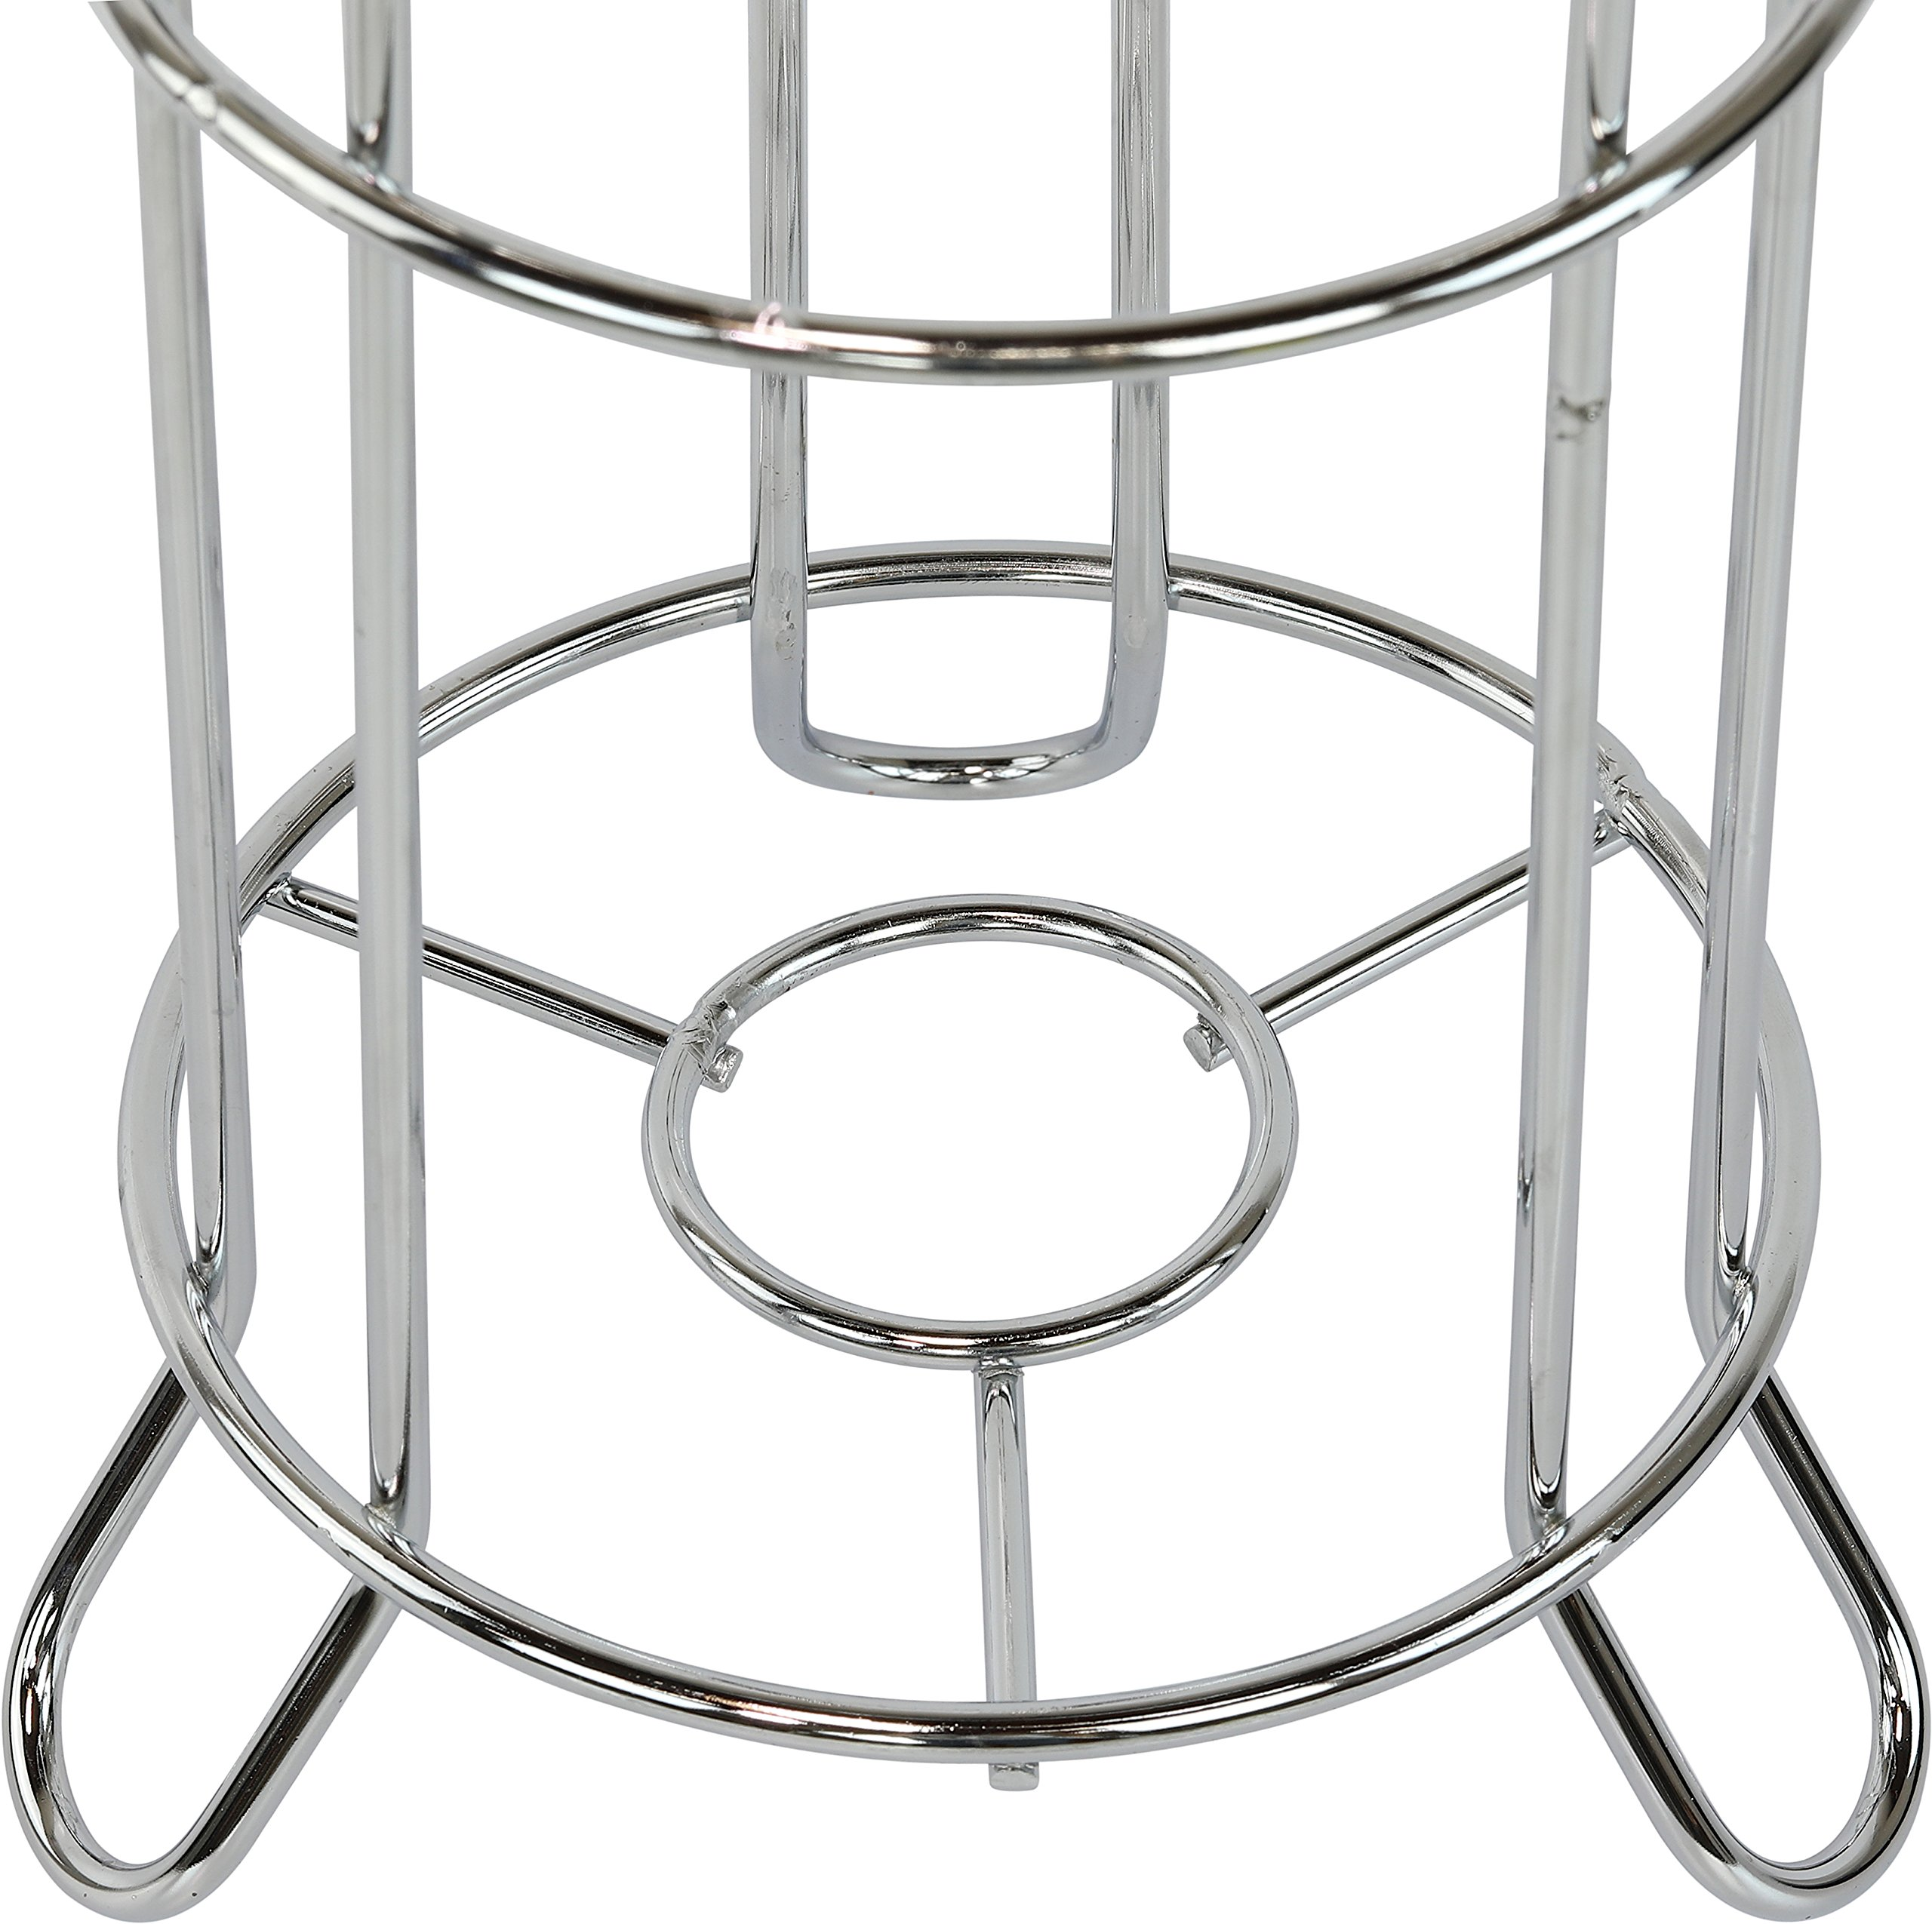 Simple Houseware Bathroom Toilet Tissue Paper Roll Storage Holder Stand, Chrome Finish 4 Free-Standing Design for any bathroom Holds 3 rolls of toilet tissue and dispenses 1. Never be without toilet paper again. Sturdy construction with elegant chrome finish